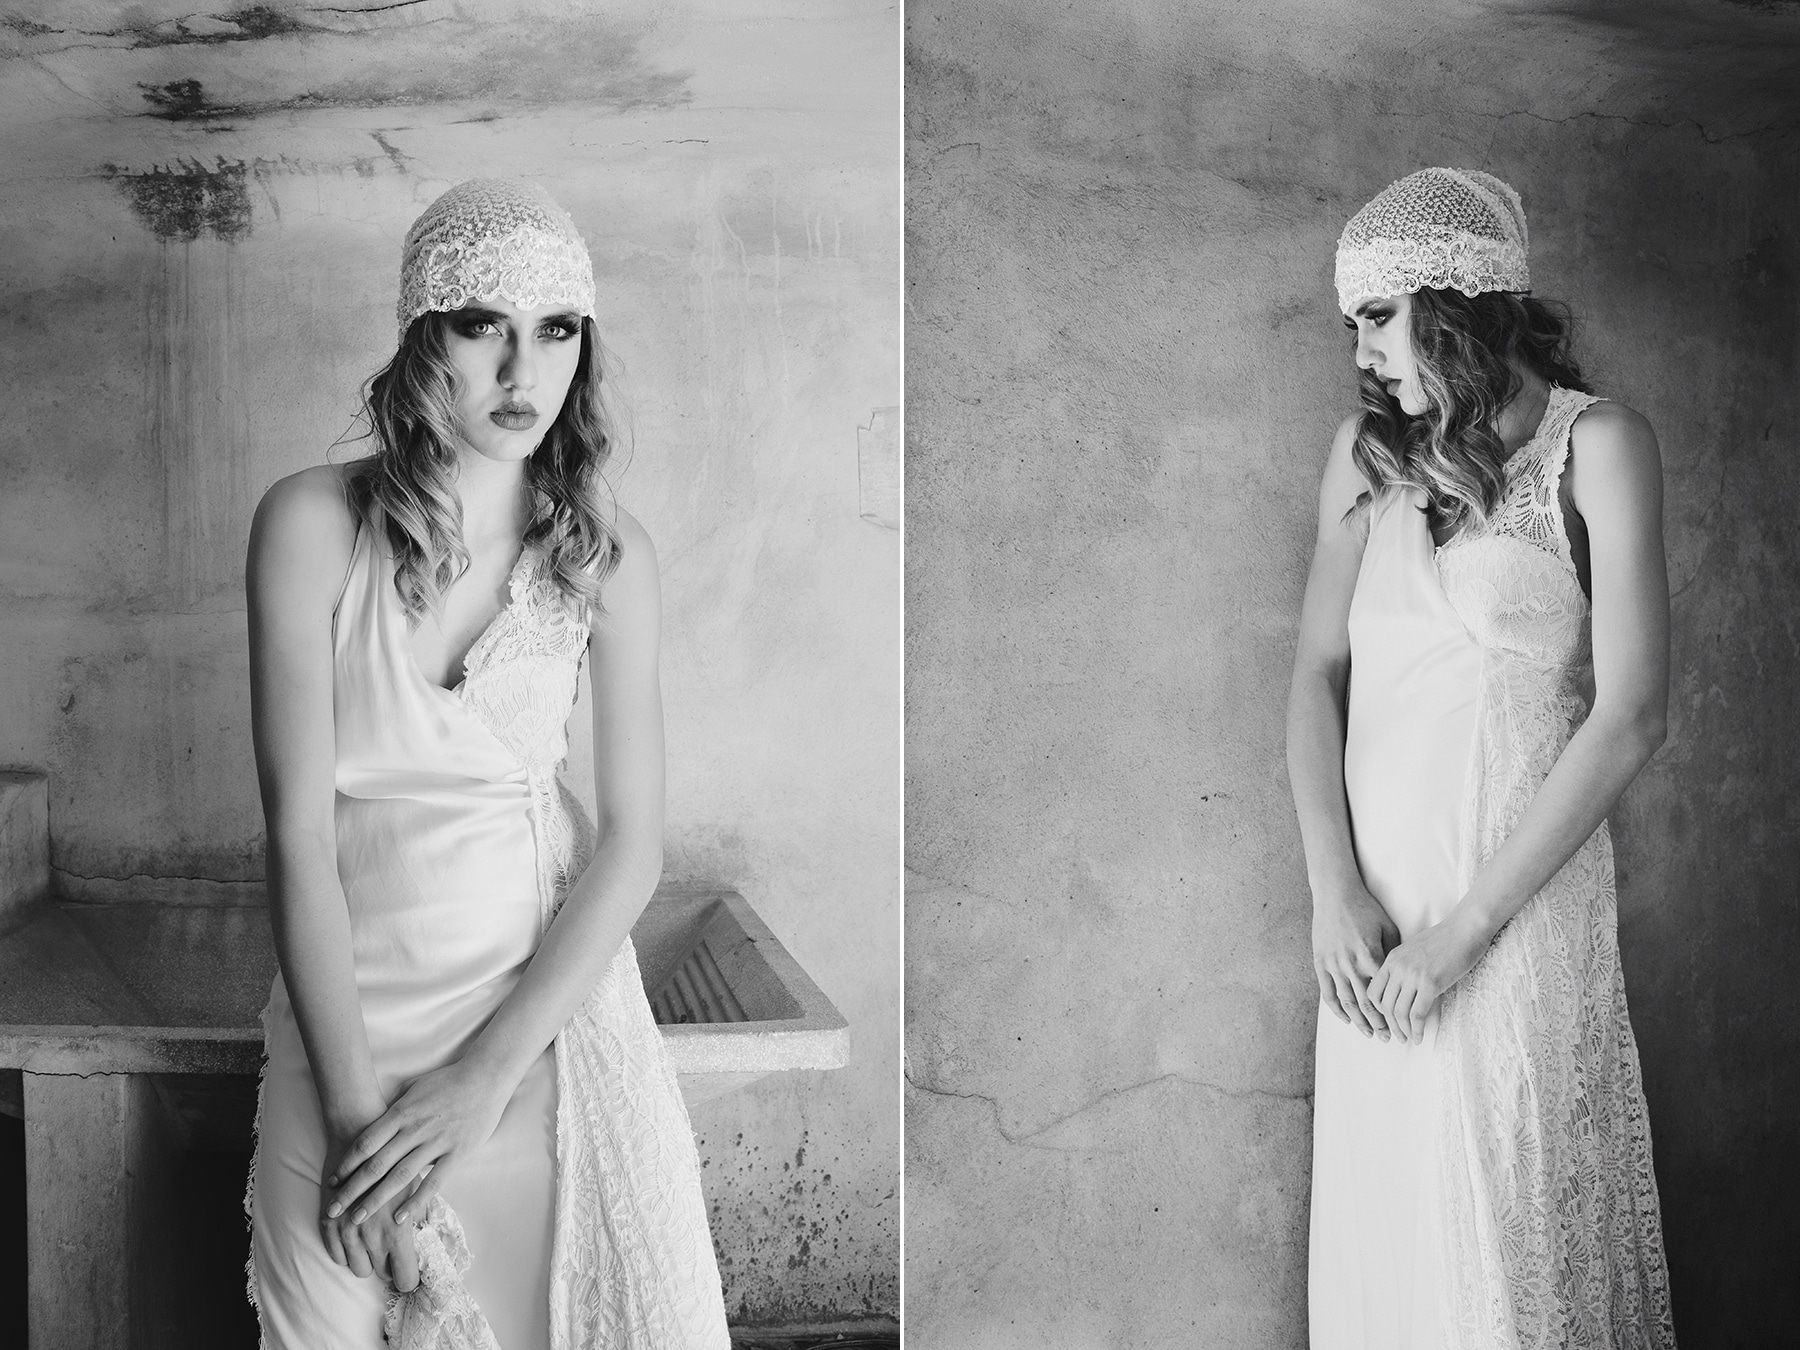 20s styled wedding dresses photo shoot! | The Wedding Tales